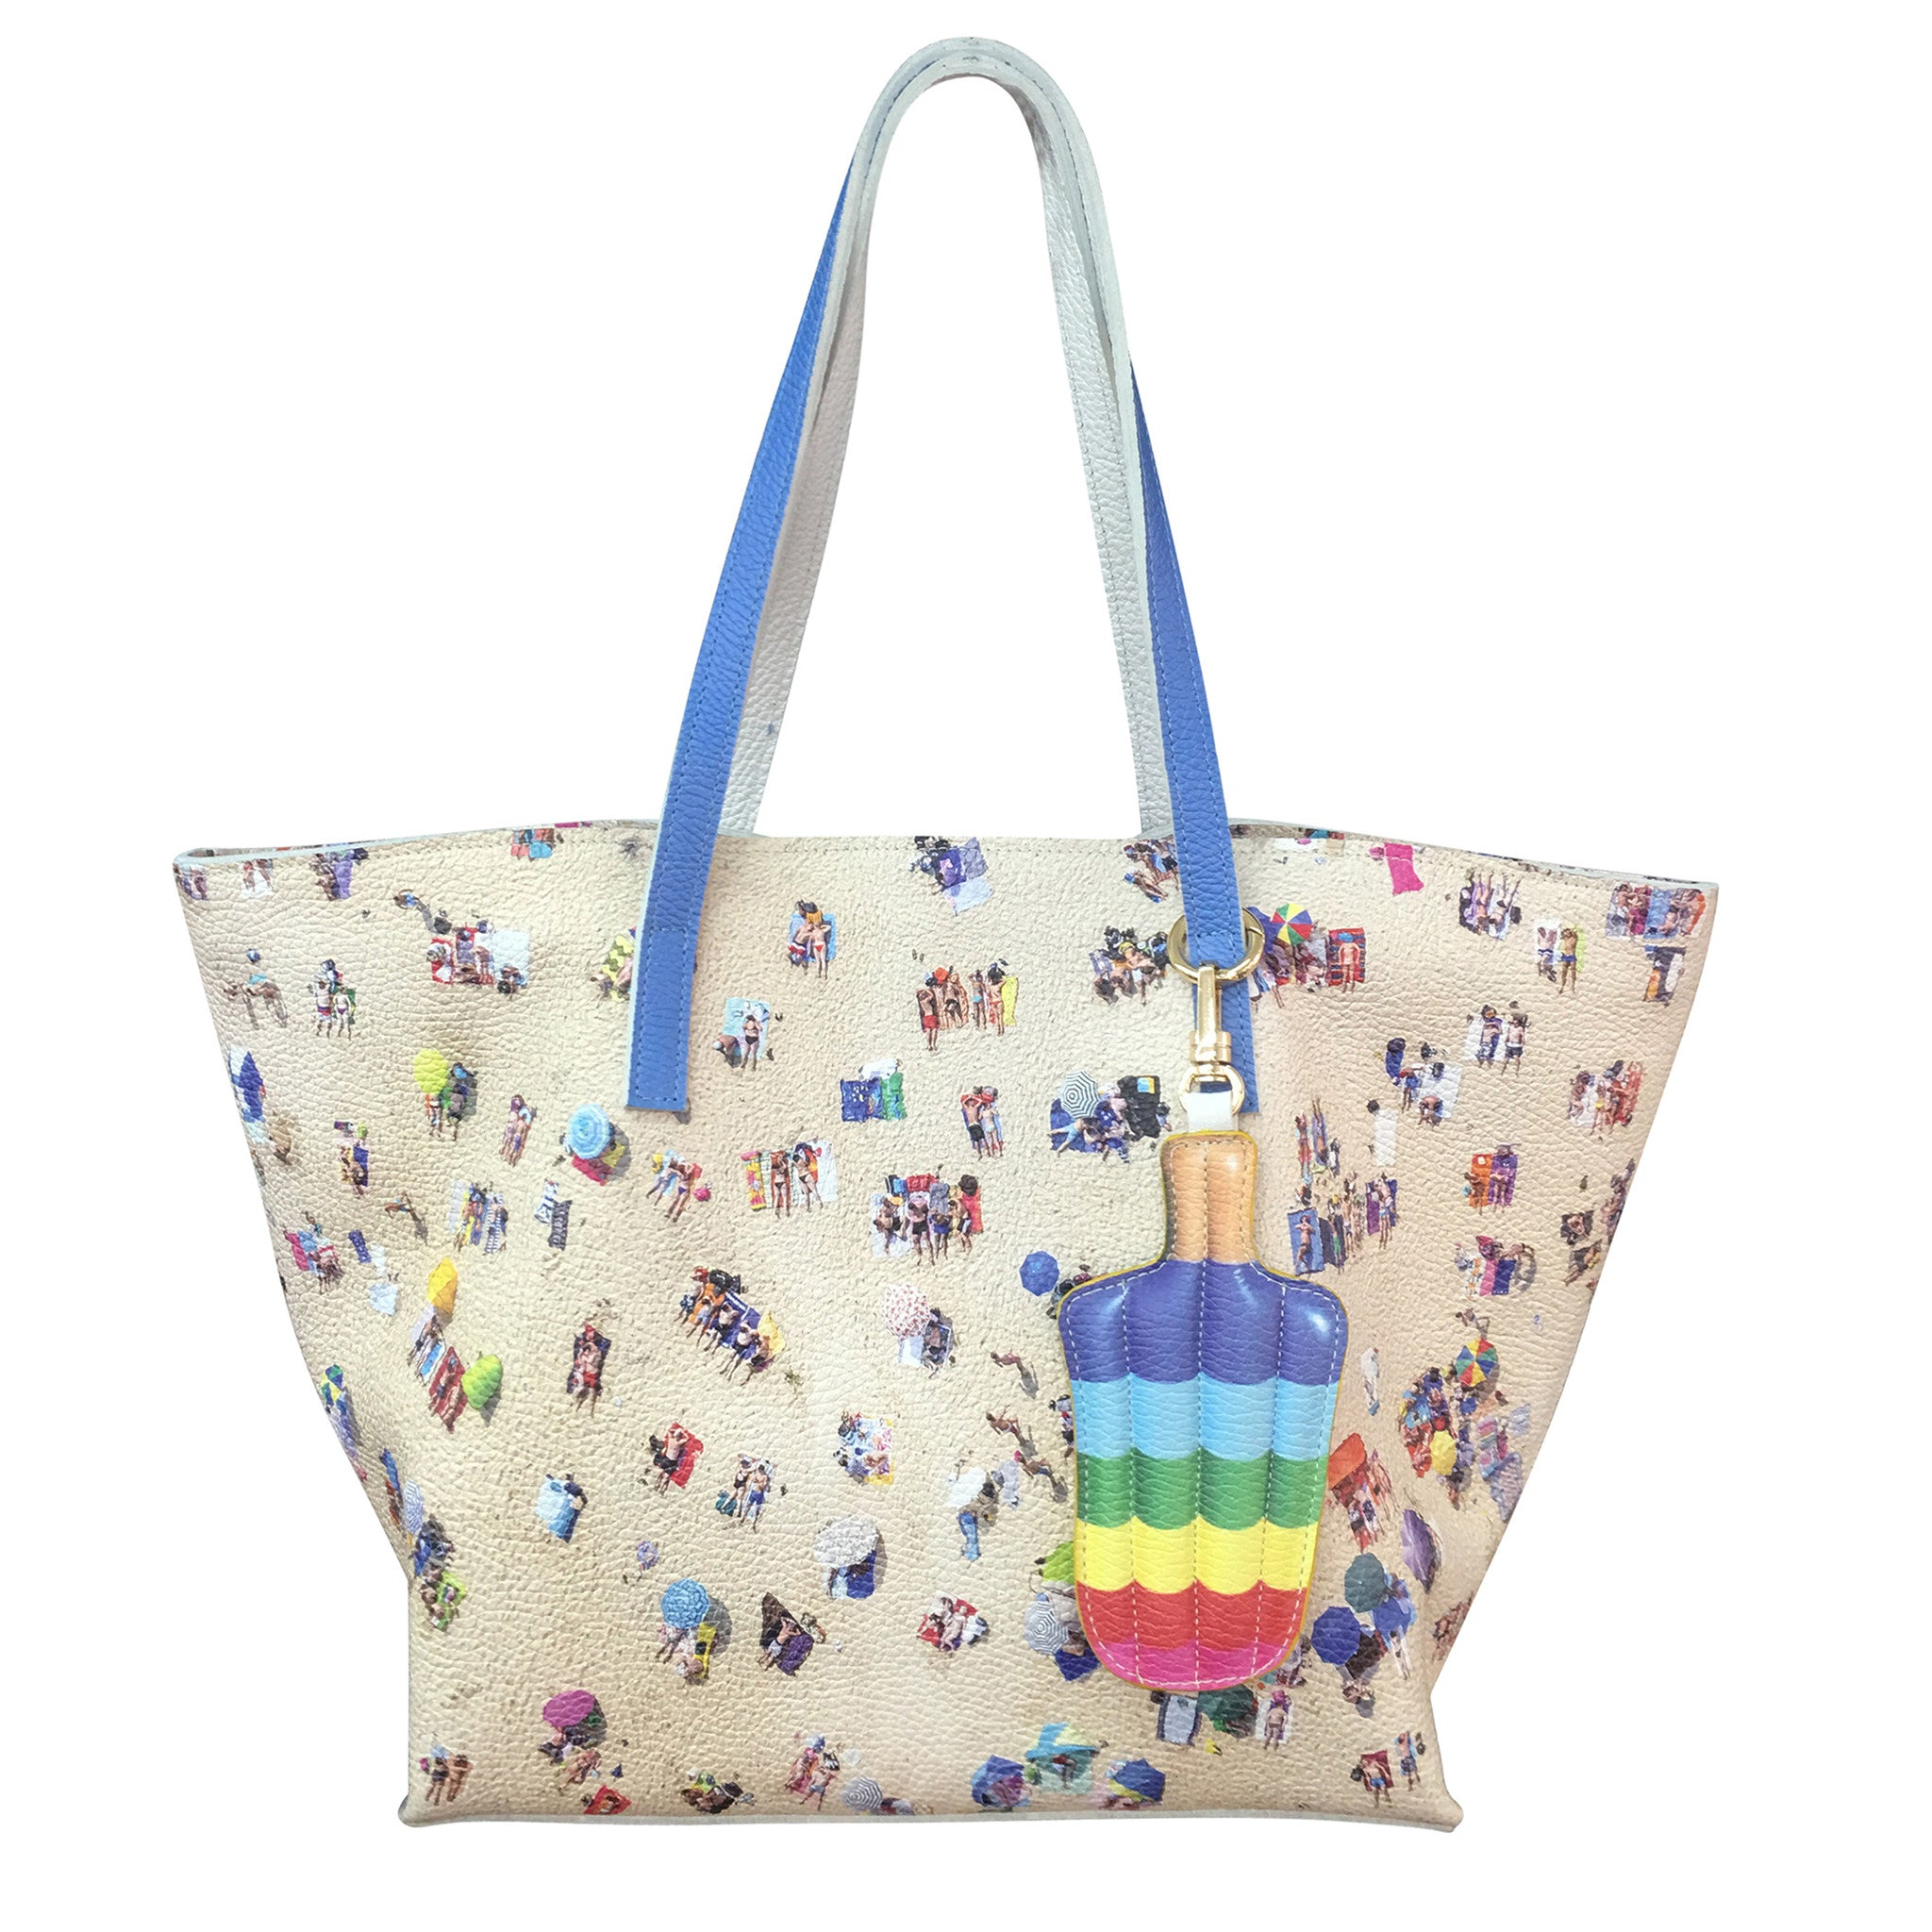 The Polka Dot Beach Wide Tote